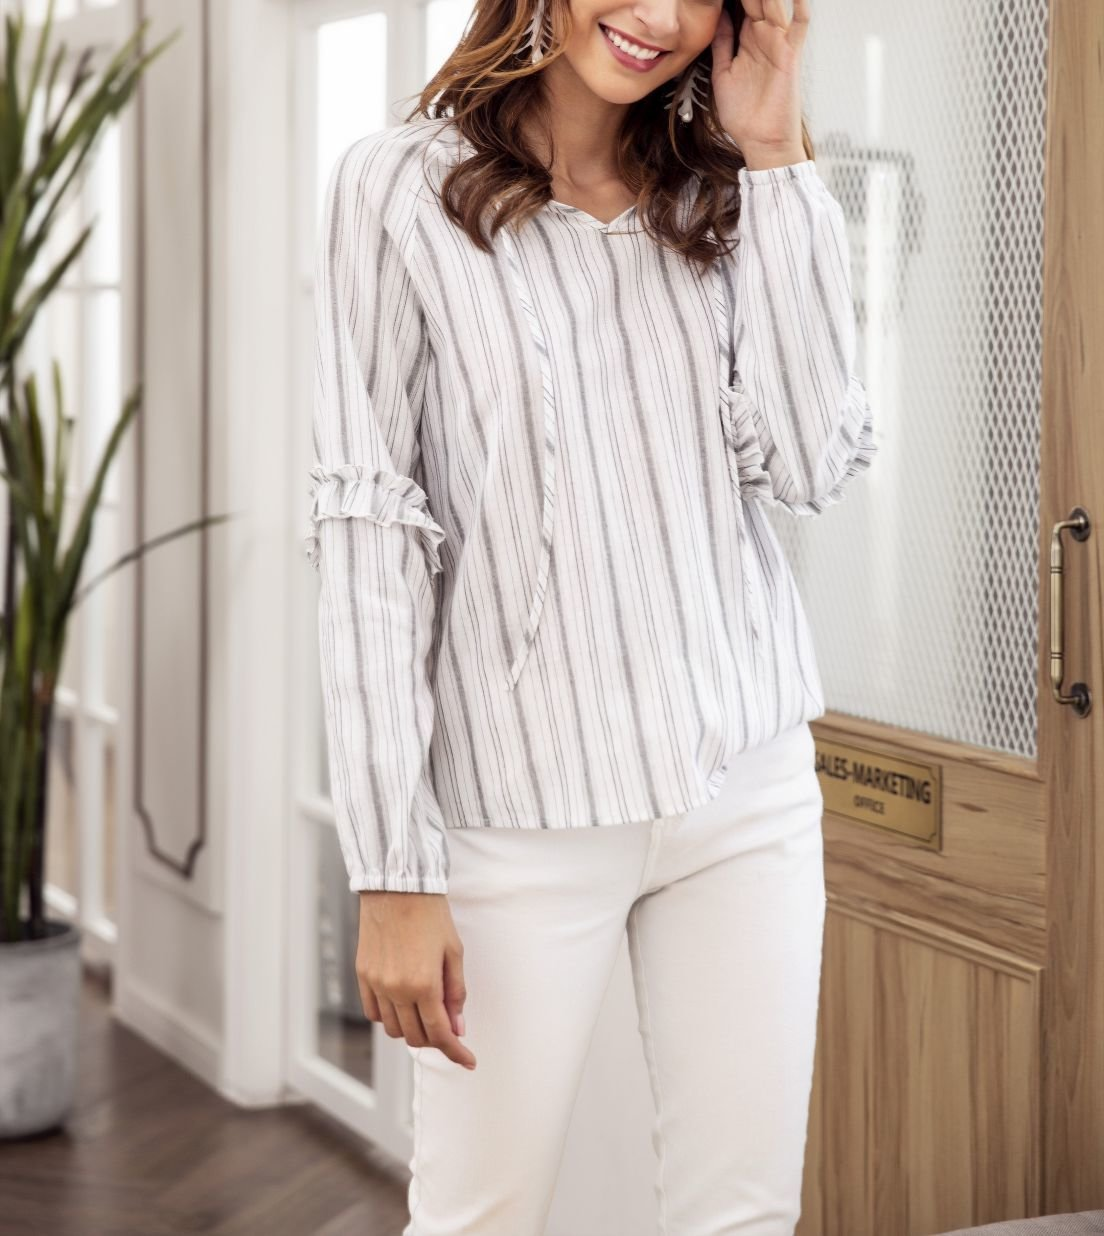 Long-Sleeved Peasant Top with Tie at Neck